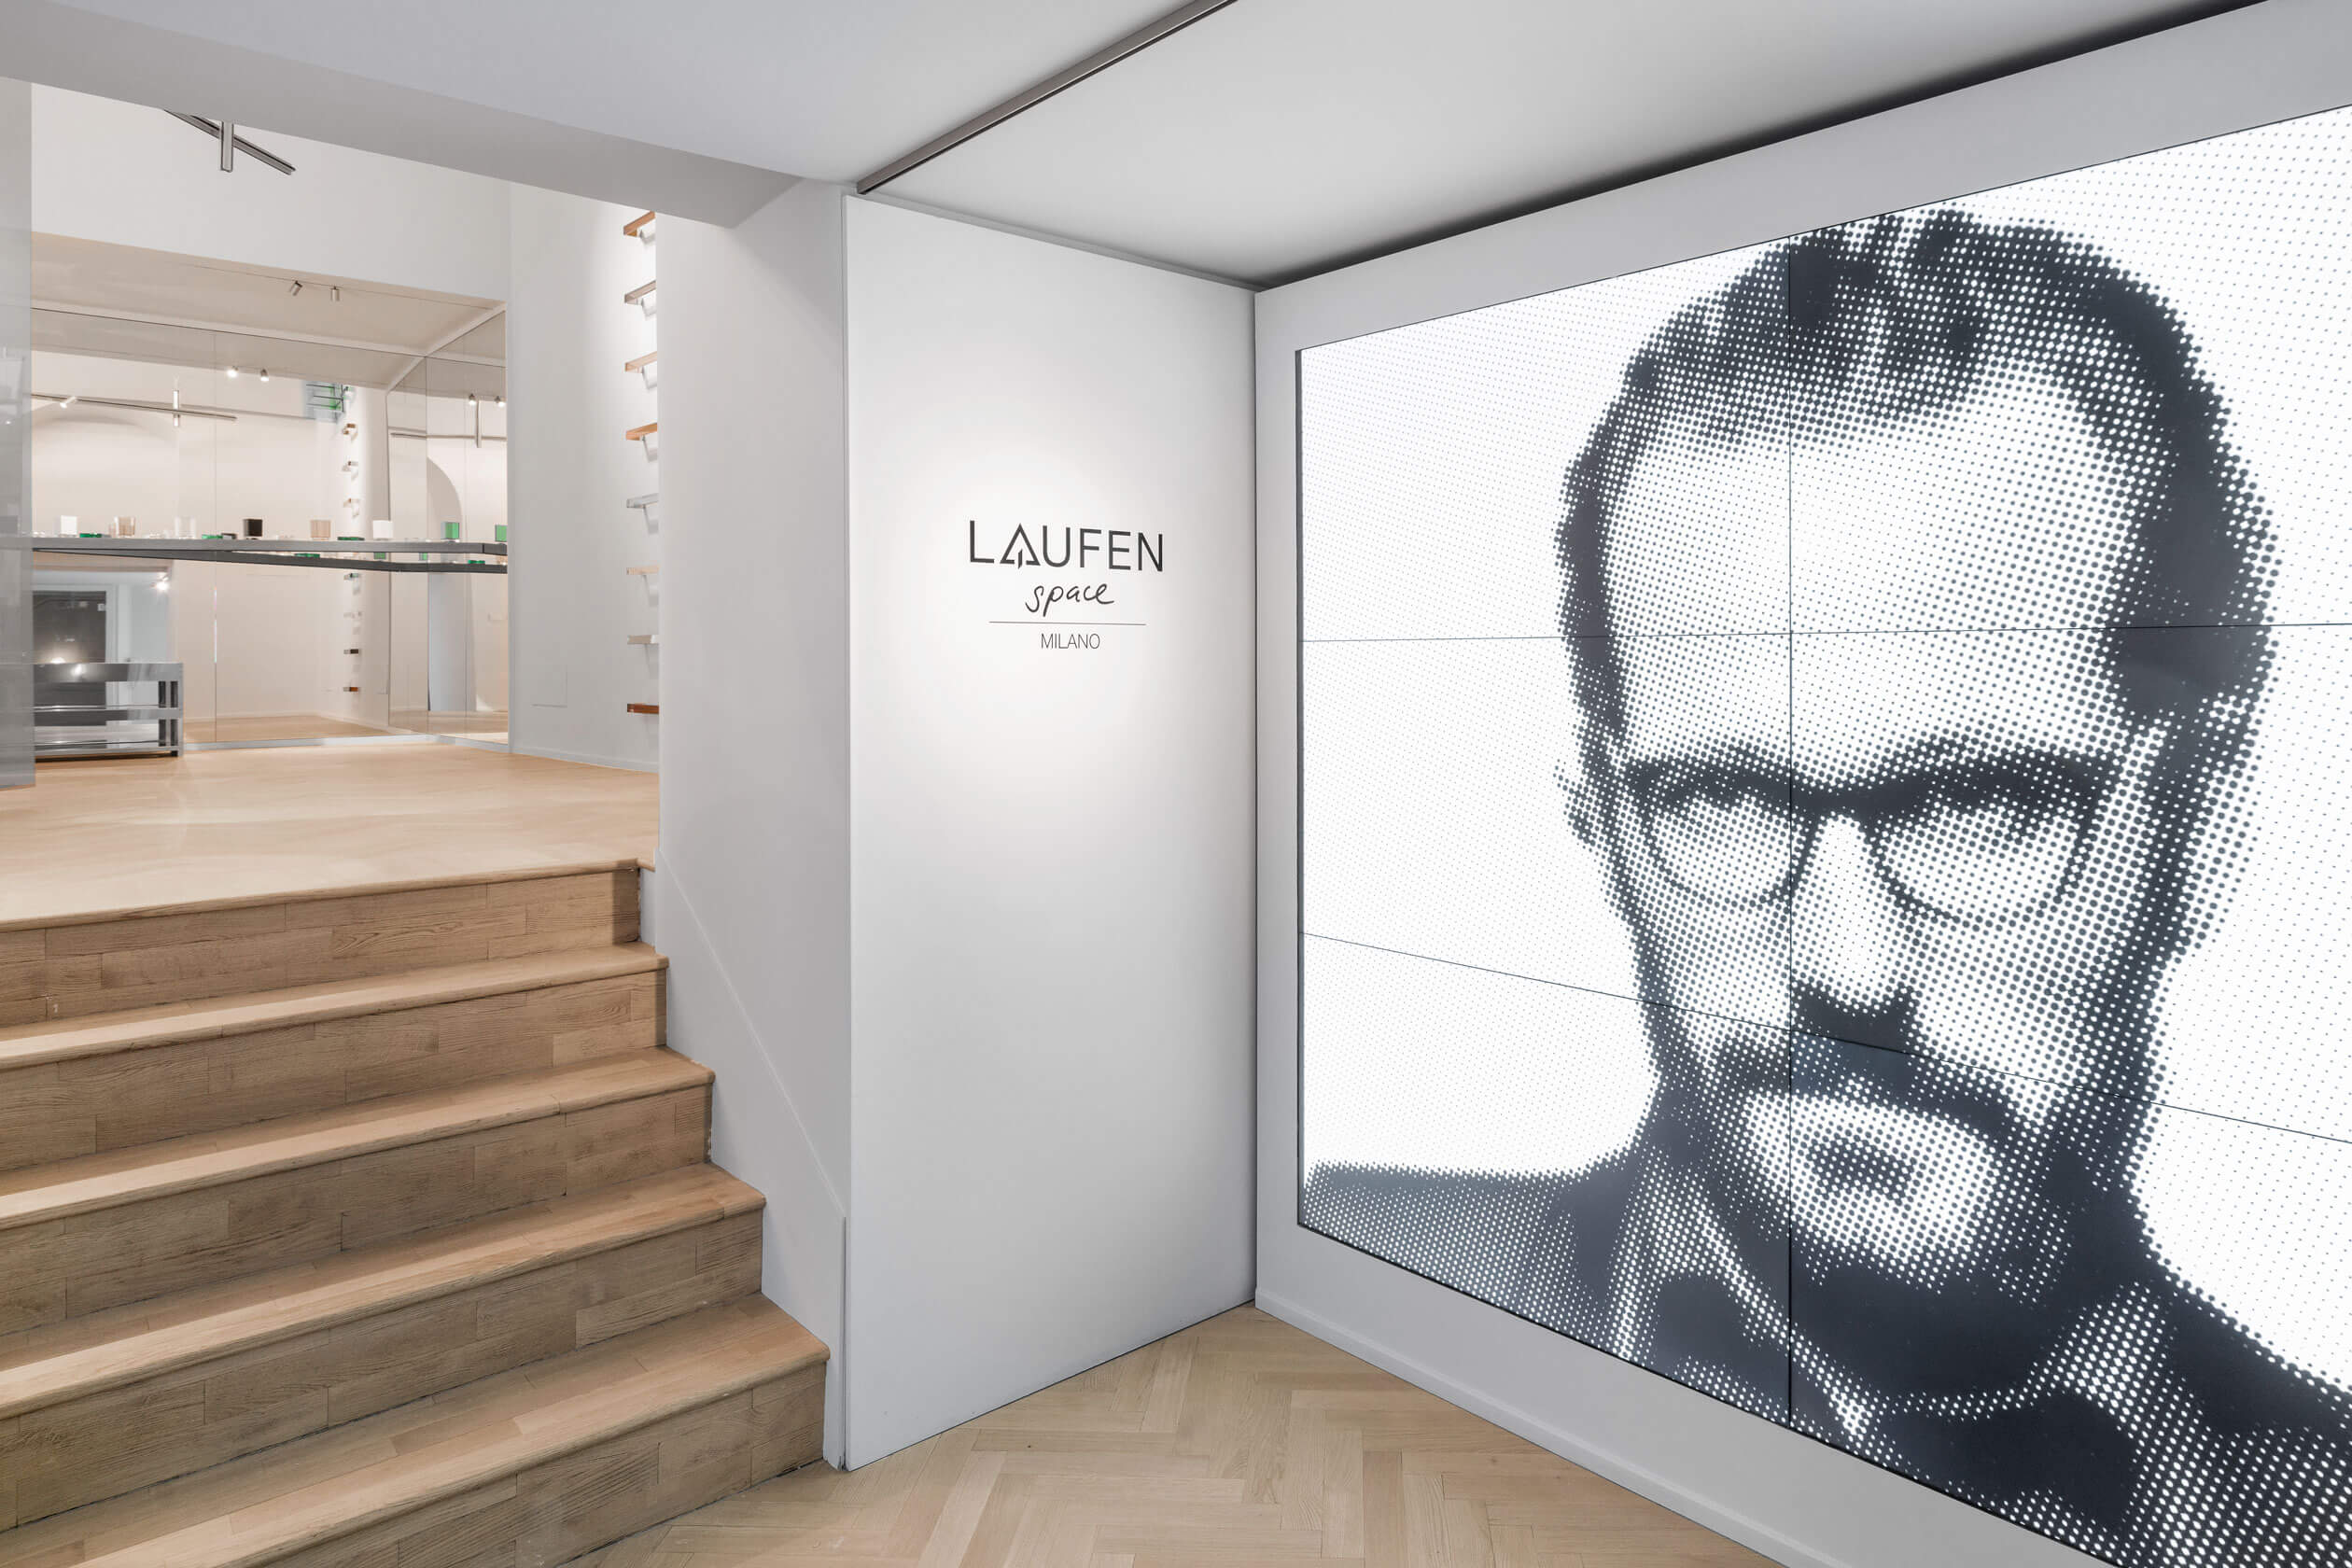 Huge screen with a portrait image in Laufen space Milano entrance area.